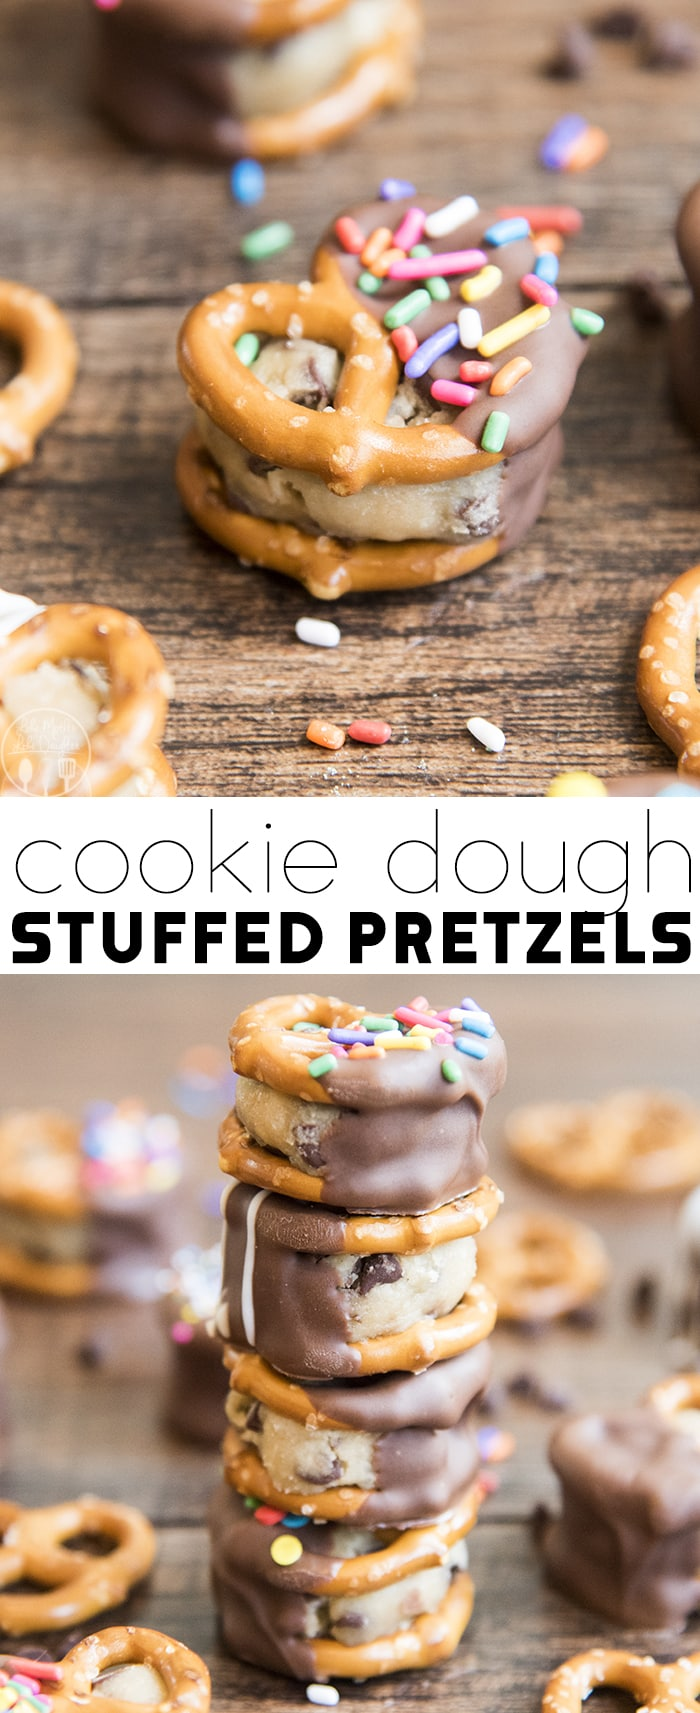 Cookie Dough Stuffed Pretzels are the perfect sweet and salty treat, with eggless cookie dough stuffed in the middle of two salty and crunchy pretzels, and all dipped in chocolate!